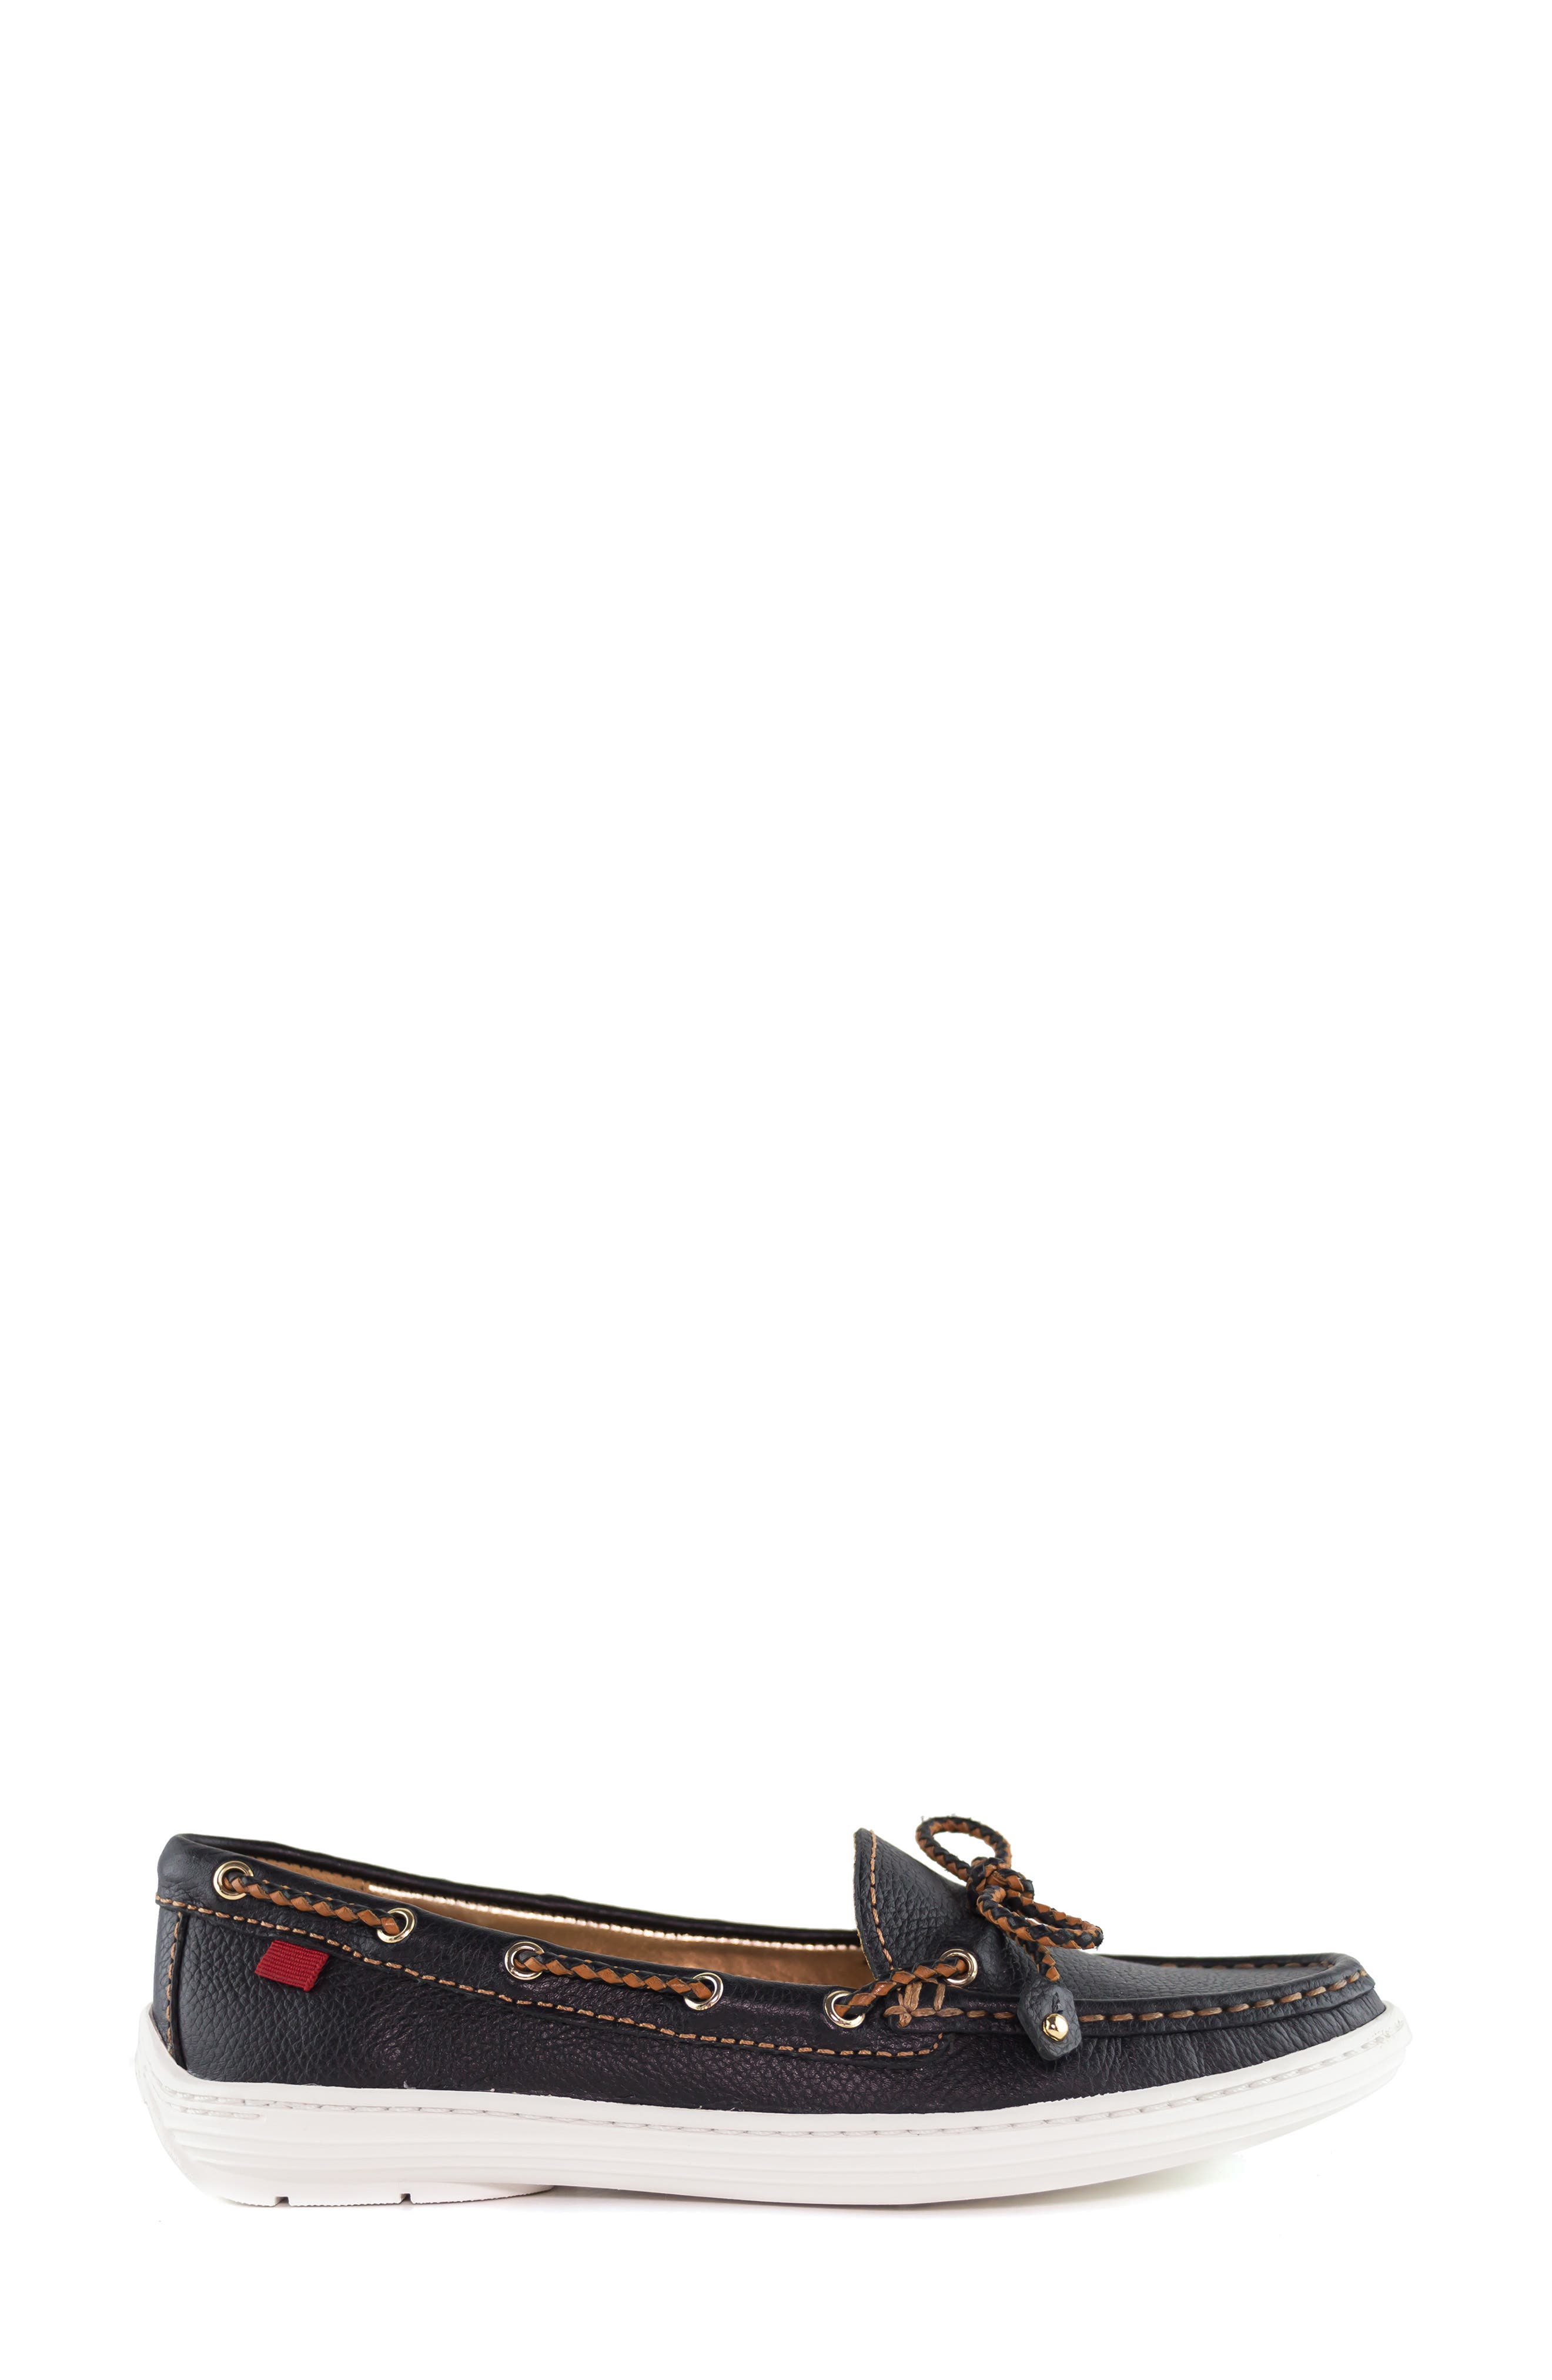 MARC JOSEPH NEW YORK, Pacific Loafer, Alternate thumbnail 3, color, BLACK LEATHER